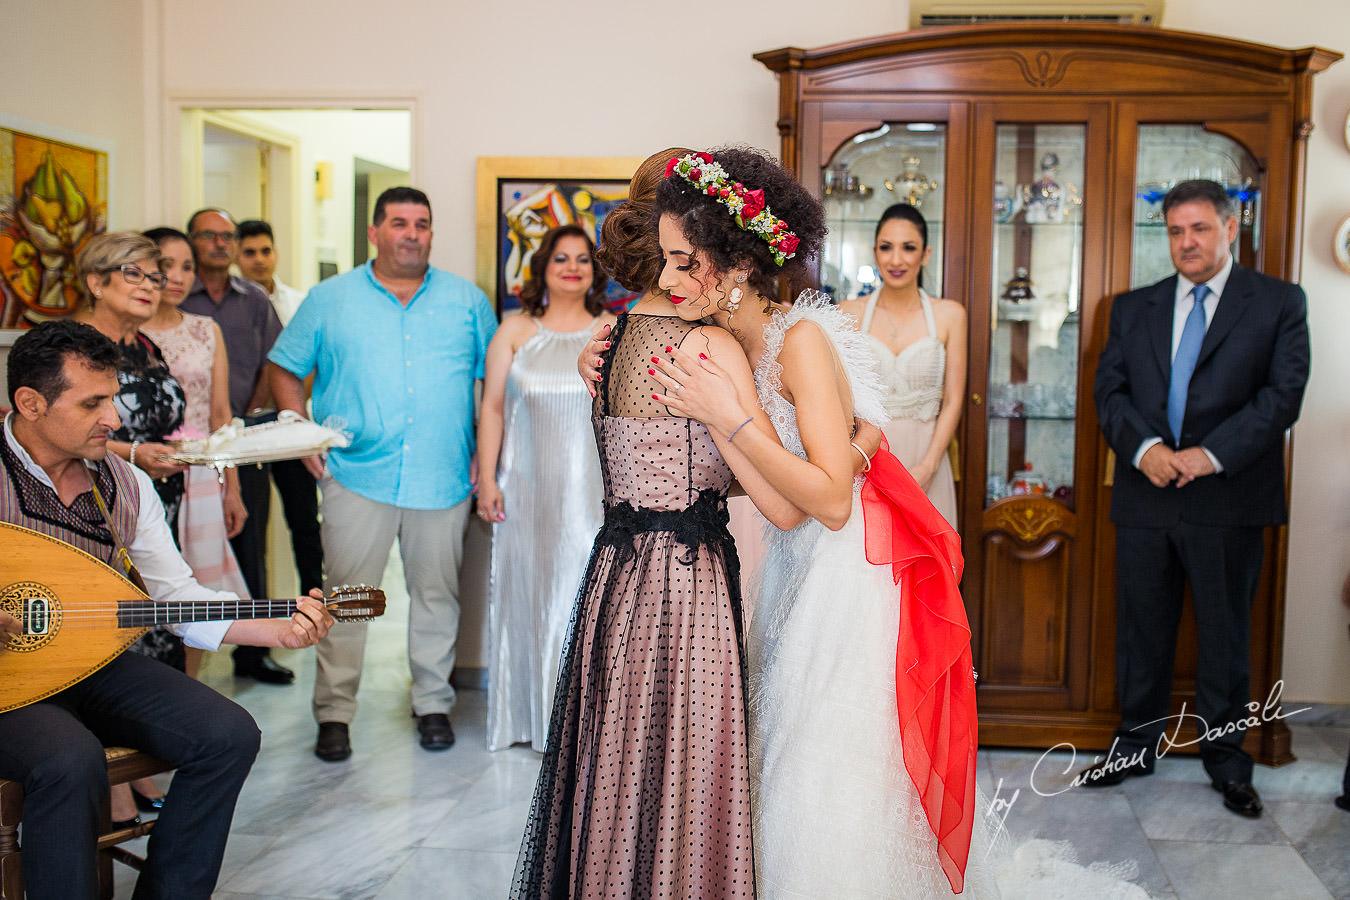 Bride and her mother, moments captured by Cyprus Wedding Photographer Cristian Dascalu at a beautiful wedding in Larnaka, Cyprus.